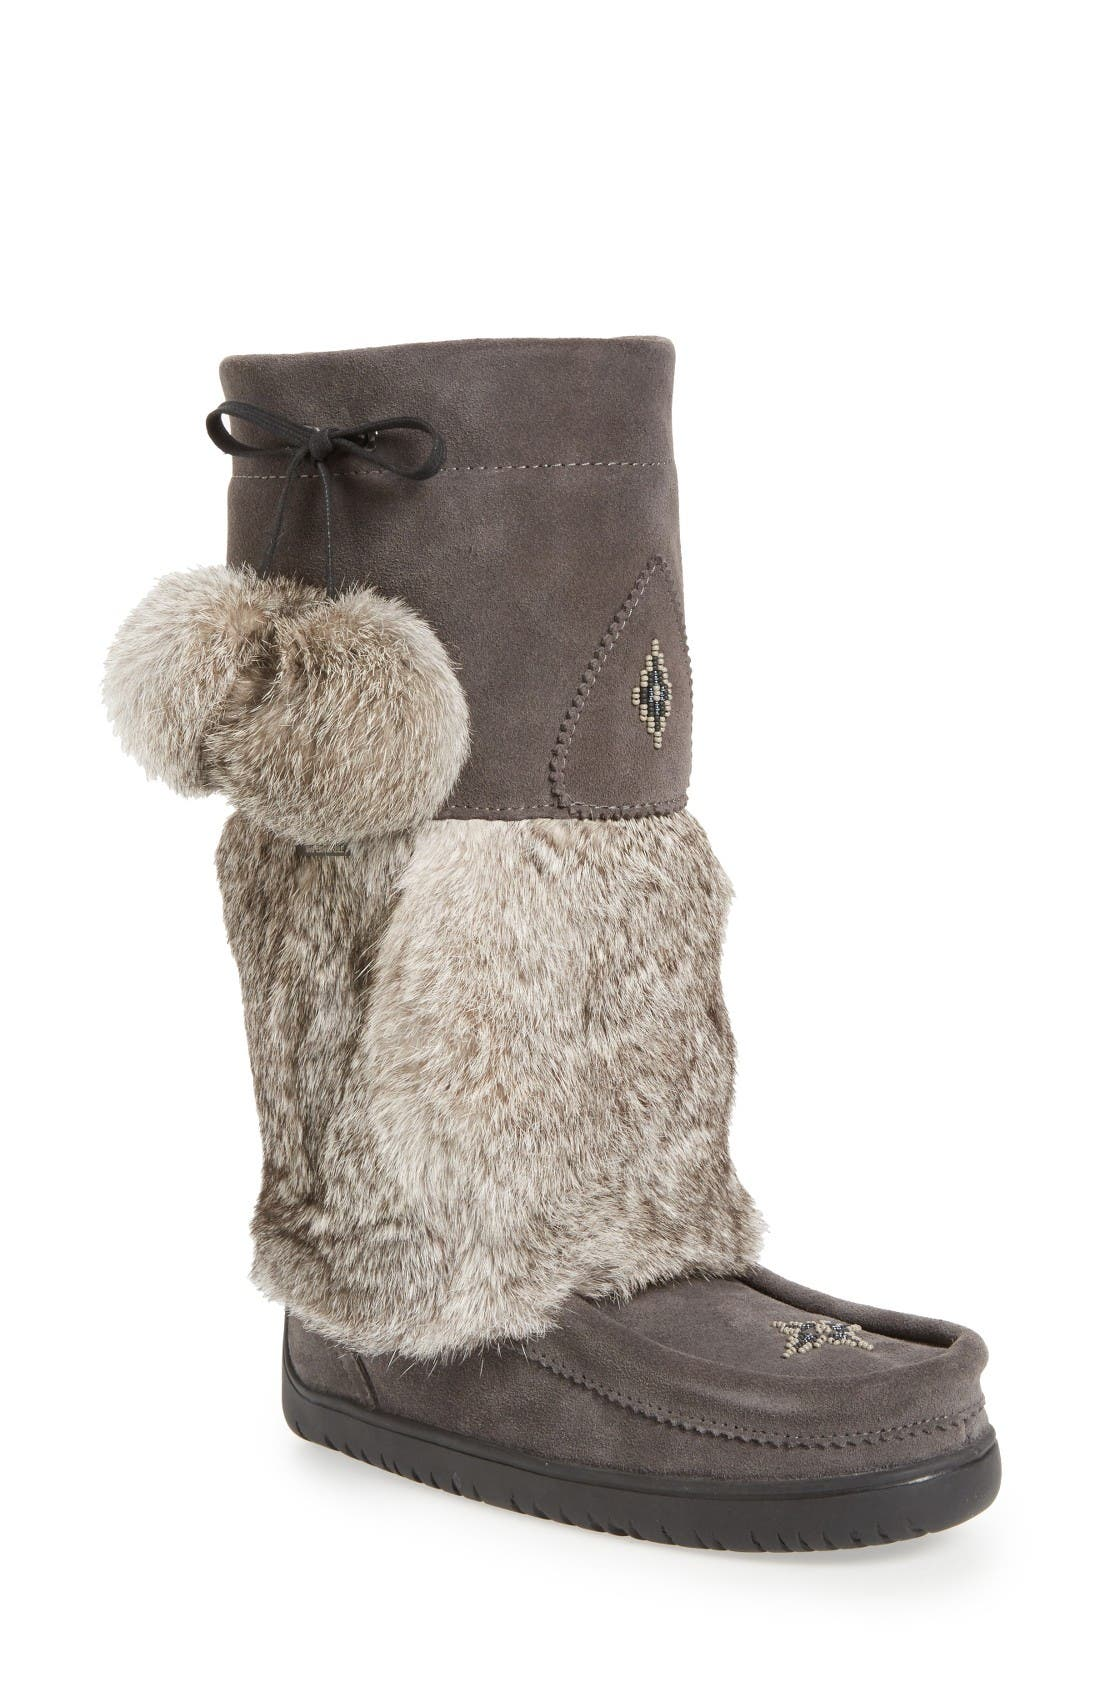 Manitobah Mukluks Snowy Owl Waterproof Genuine Fur Boot (Women)